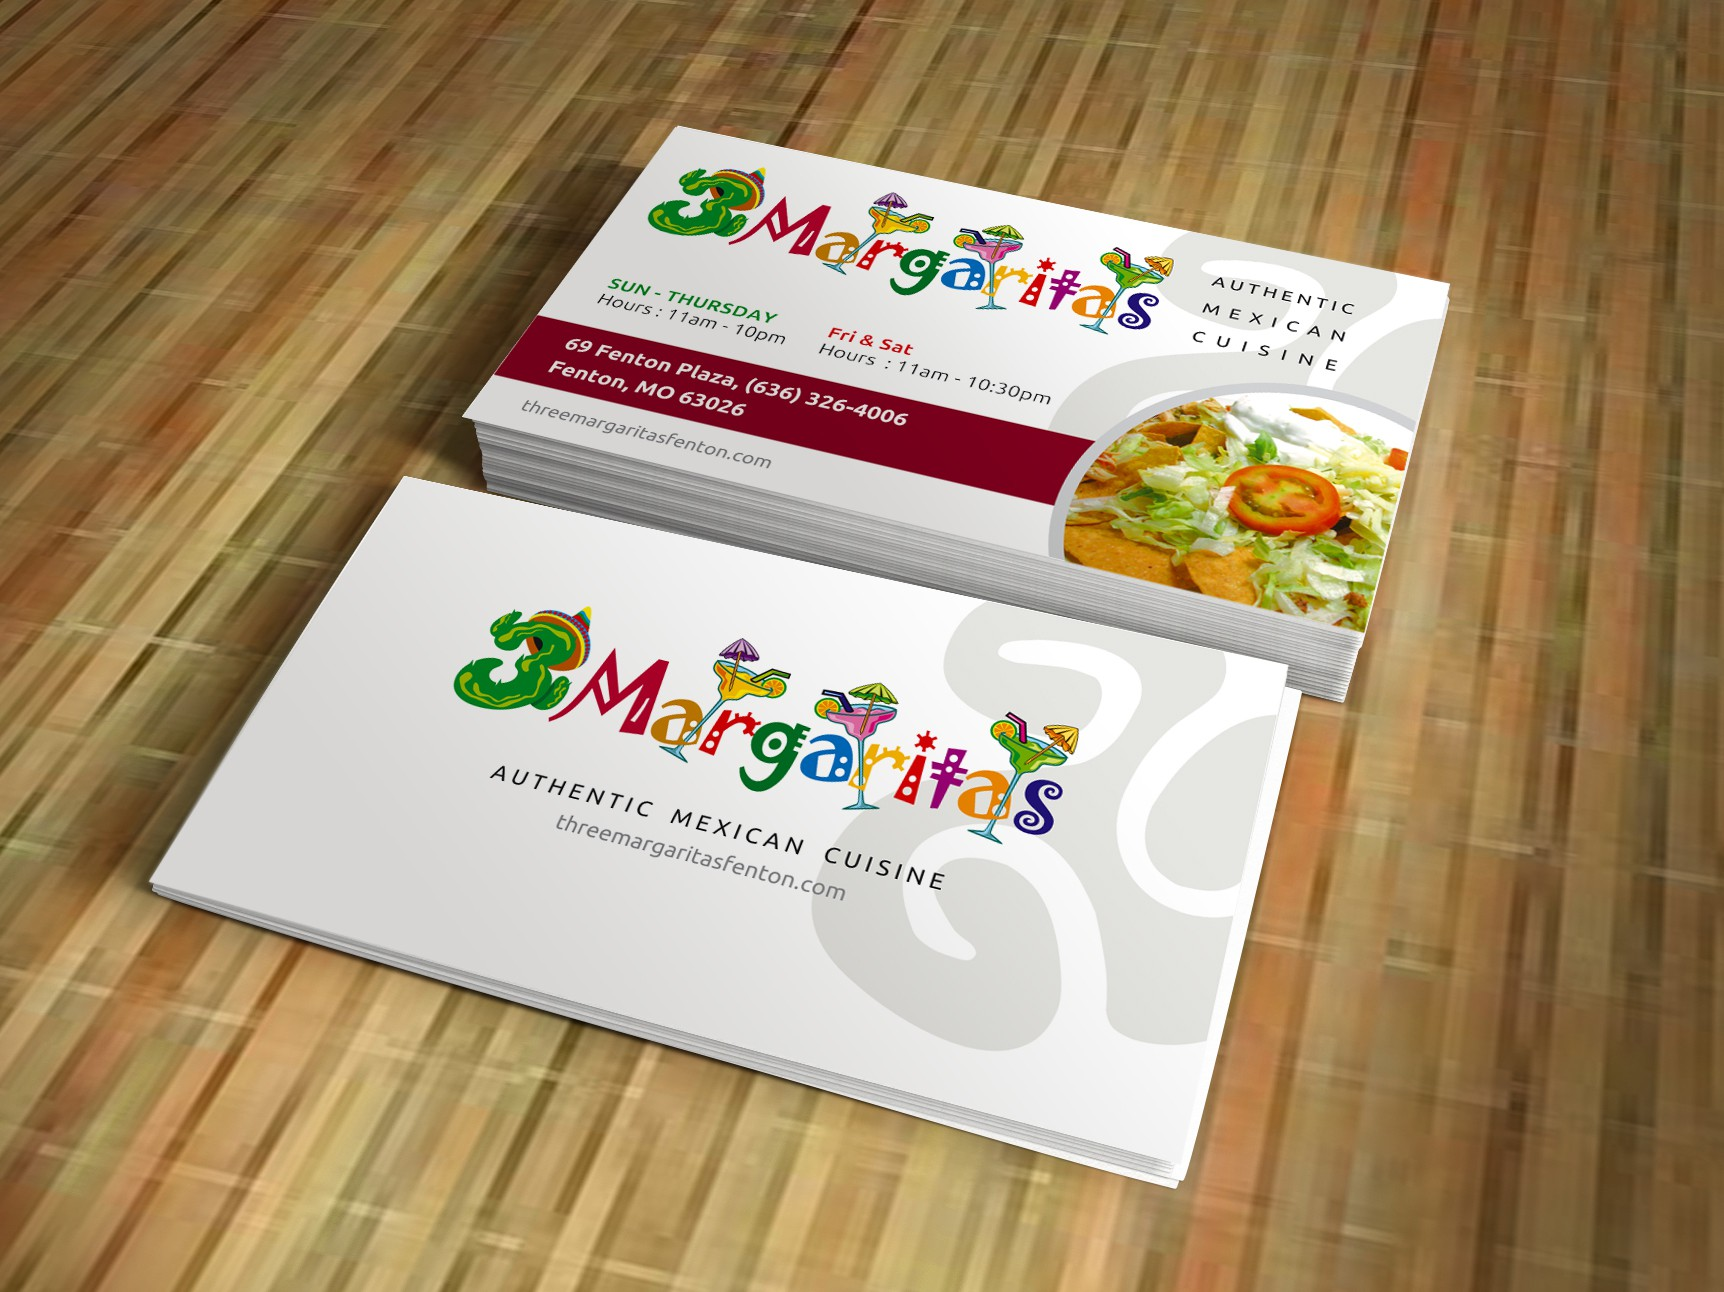 Create the next logo for 3 Margaritas Mexican Restaurant